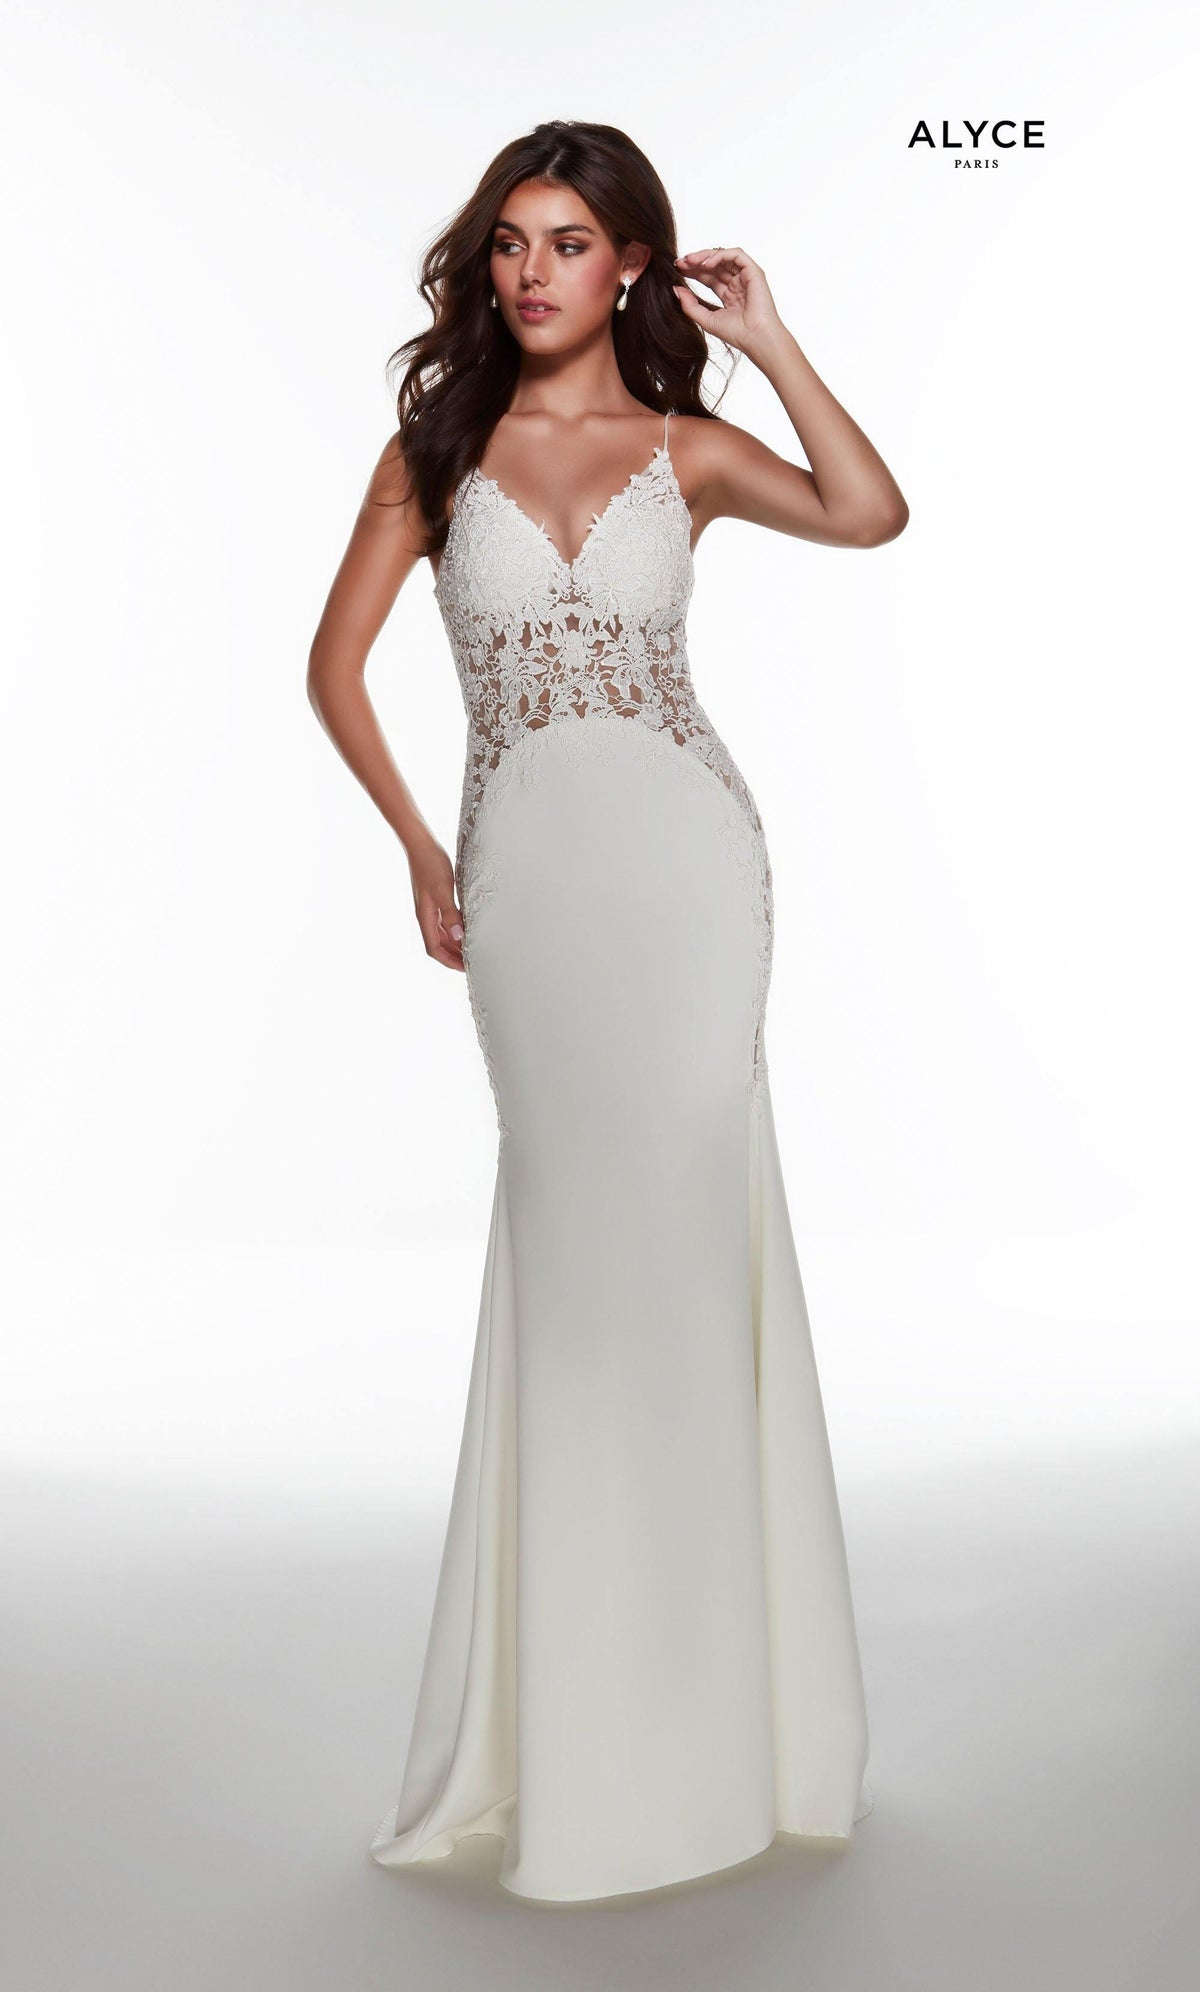 Ivory fit and flare informal bridal dress with a V neckline and sheer lace bodice